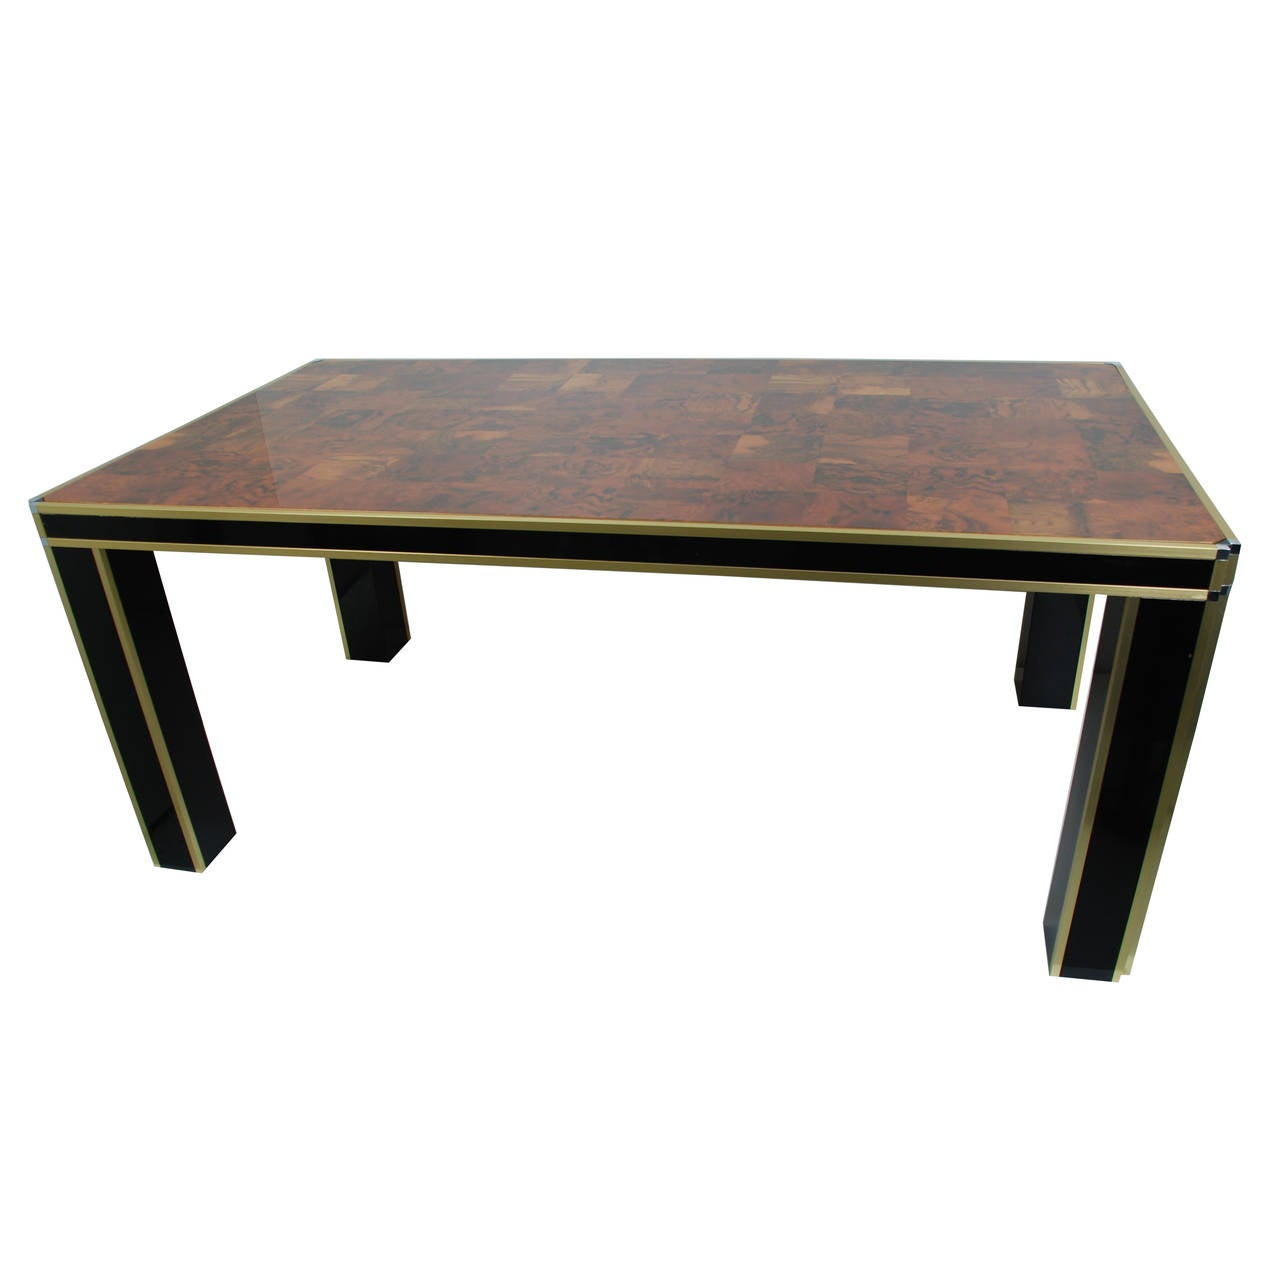 Dining table in the style of willy rizzo at 1stdibs for Table willy rizzo